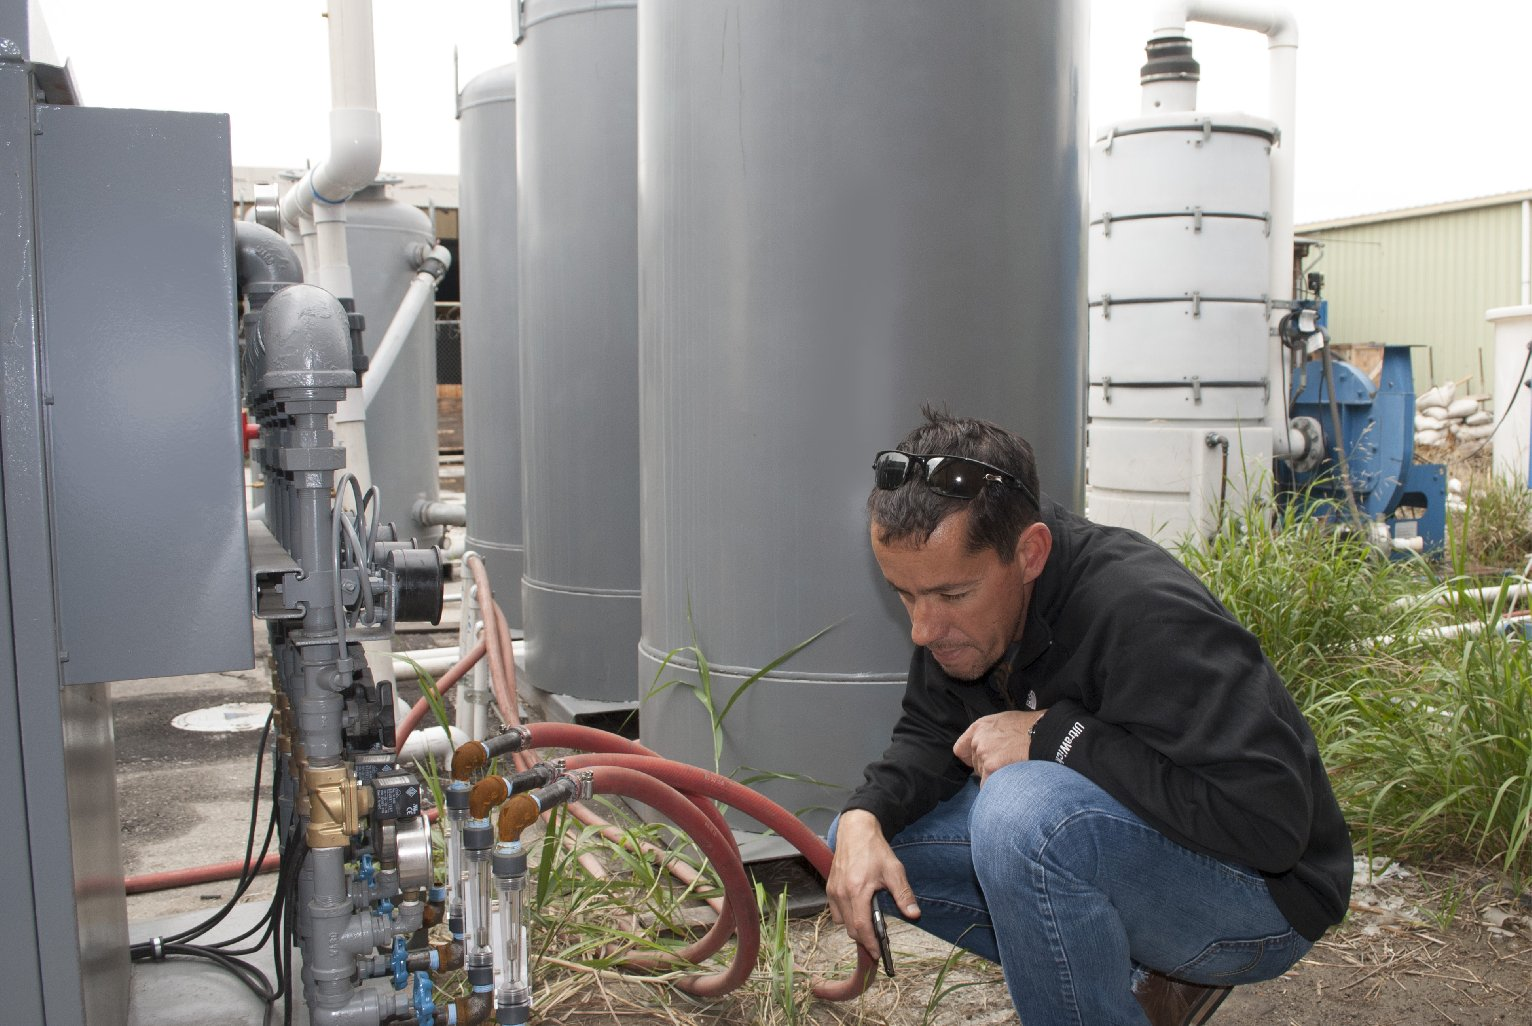 """Wayne Ziegler, general manager of the environmental remediation company The Reynolds Group, checks """"sparging"""" equipment at a cleanup site south of Los Angeles. (Chris Richard/KQED)"""